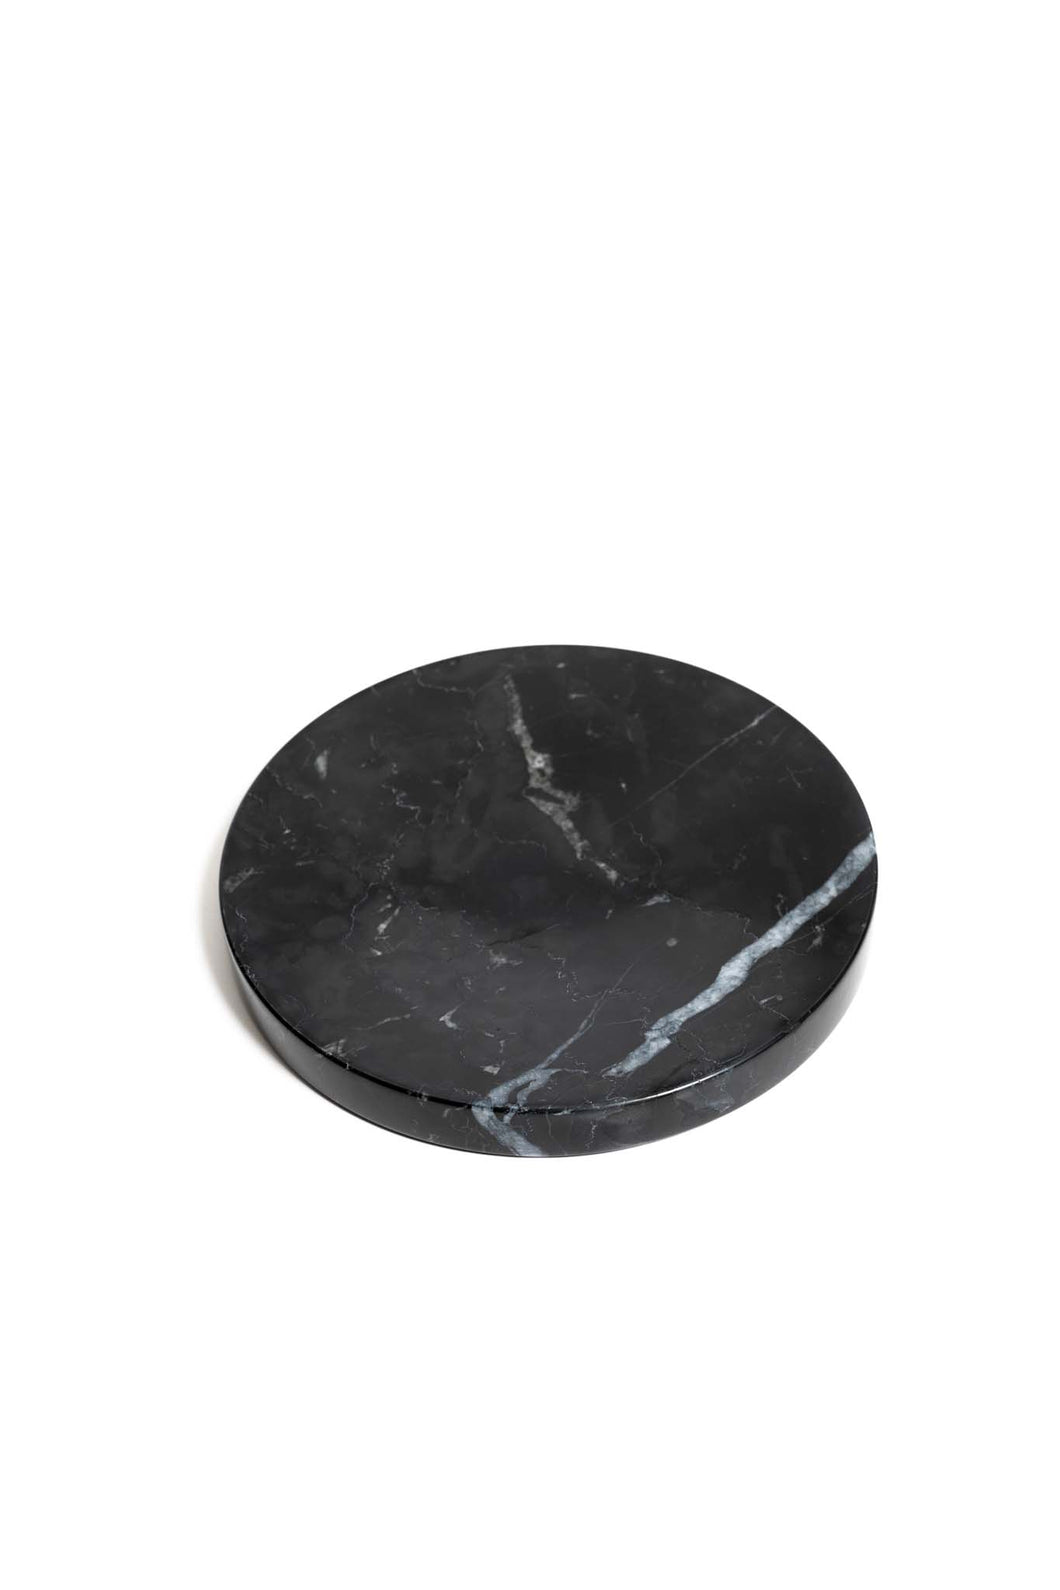 Pierson Marble Tray - Black